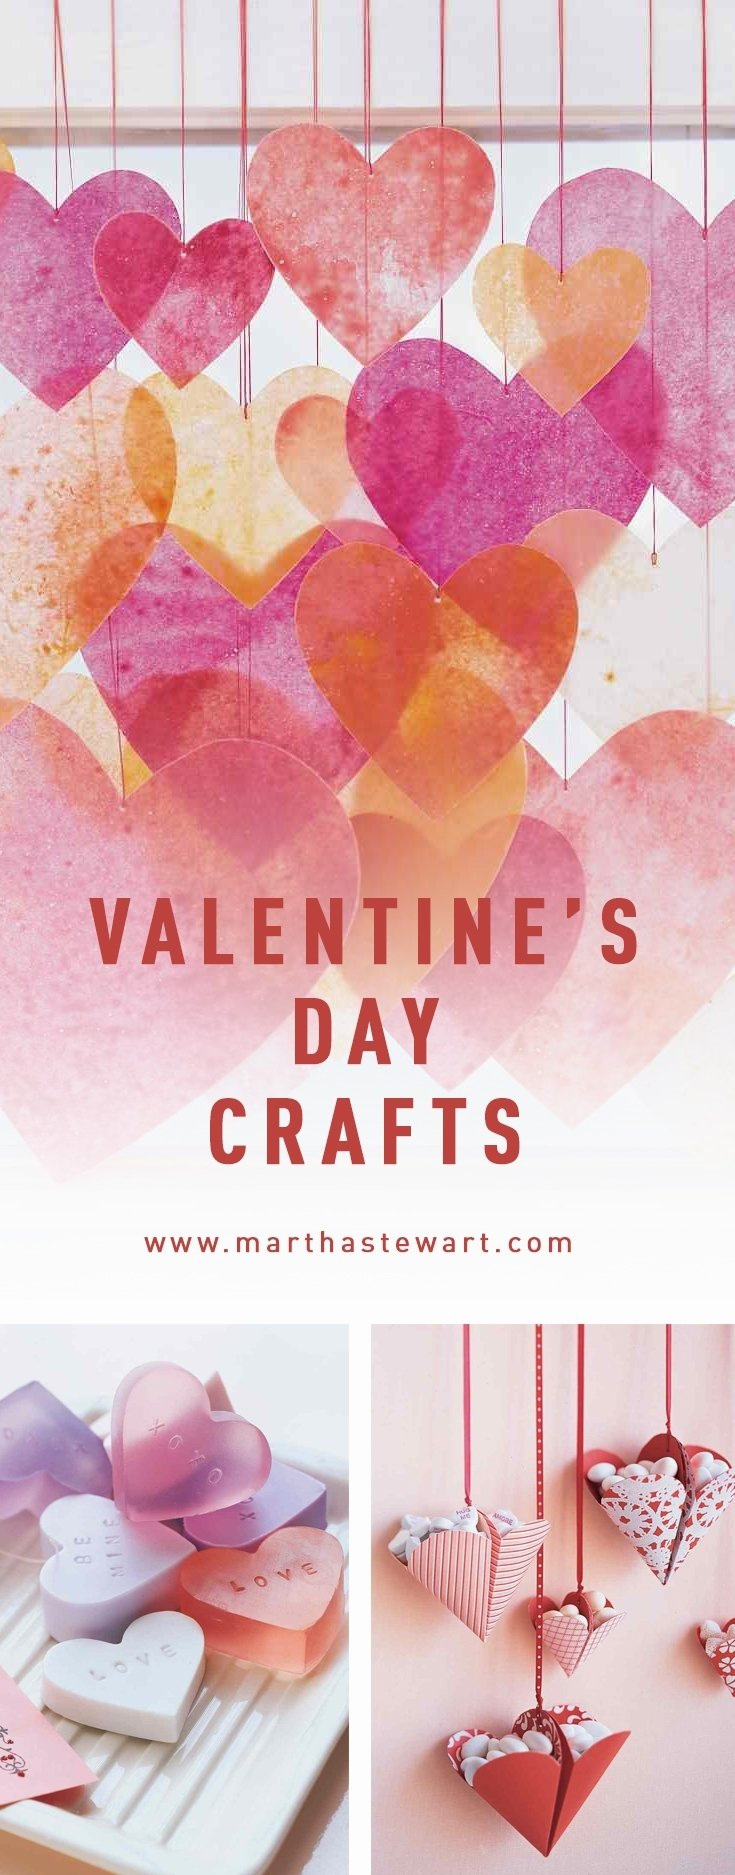 10 Ideal Martha Stewart Valentines Day Ideas